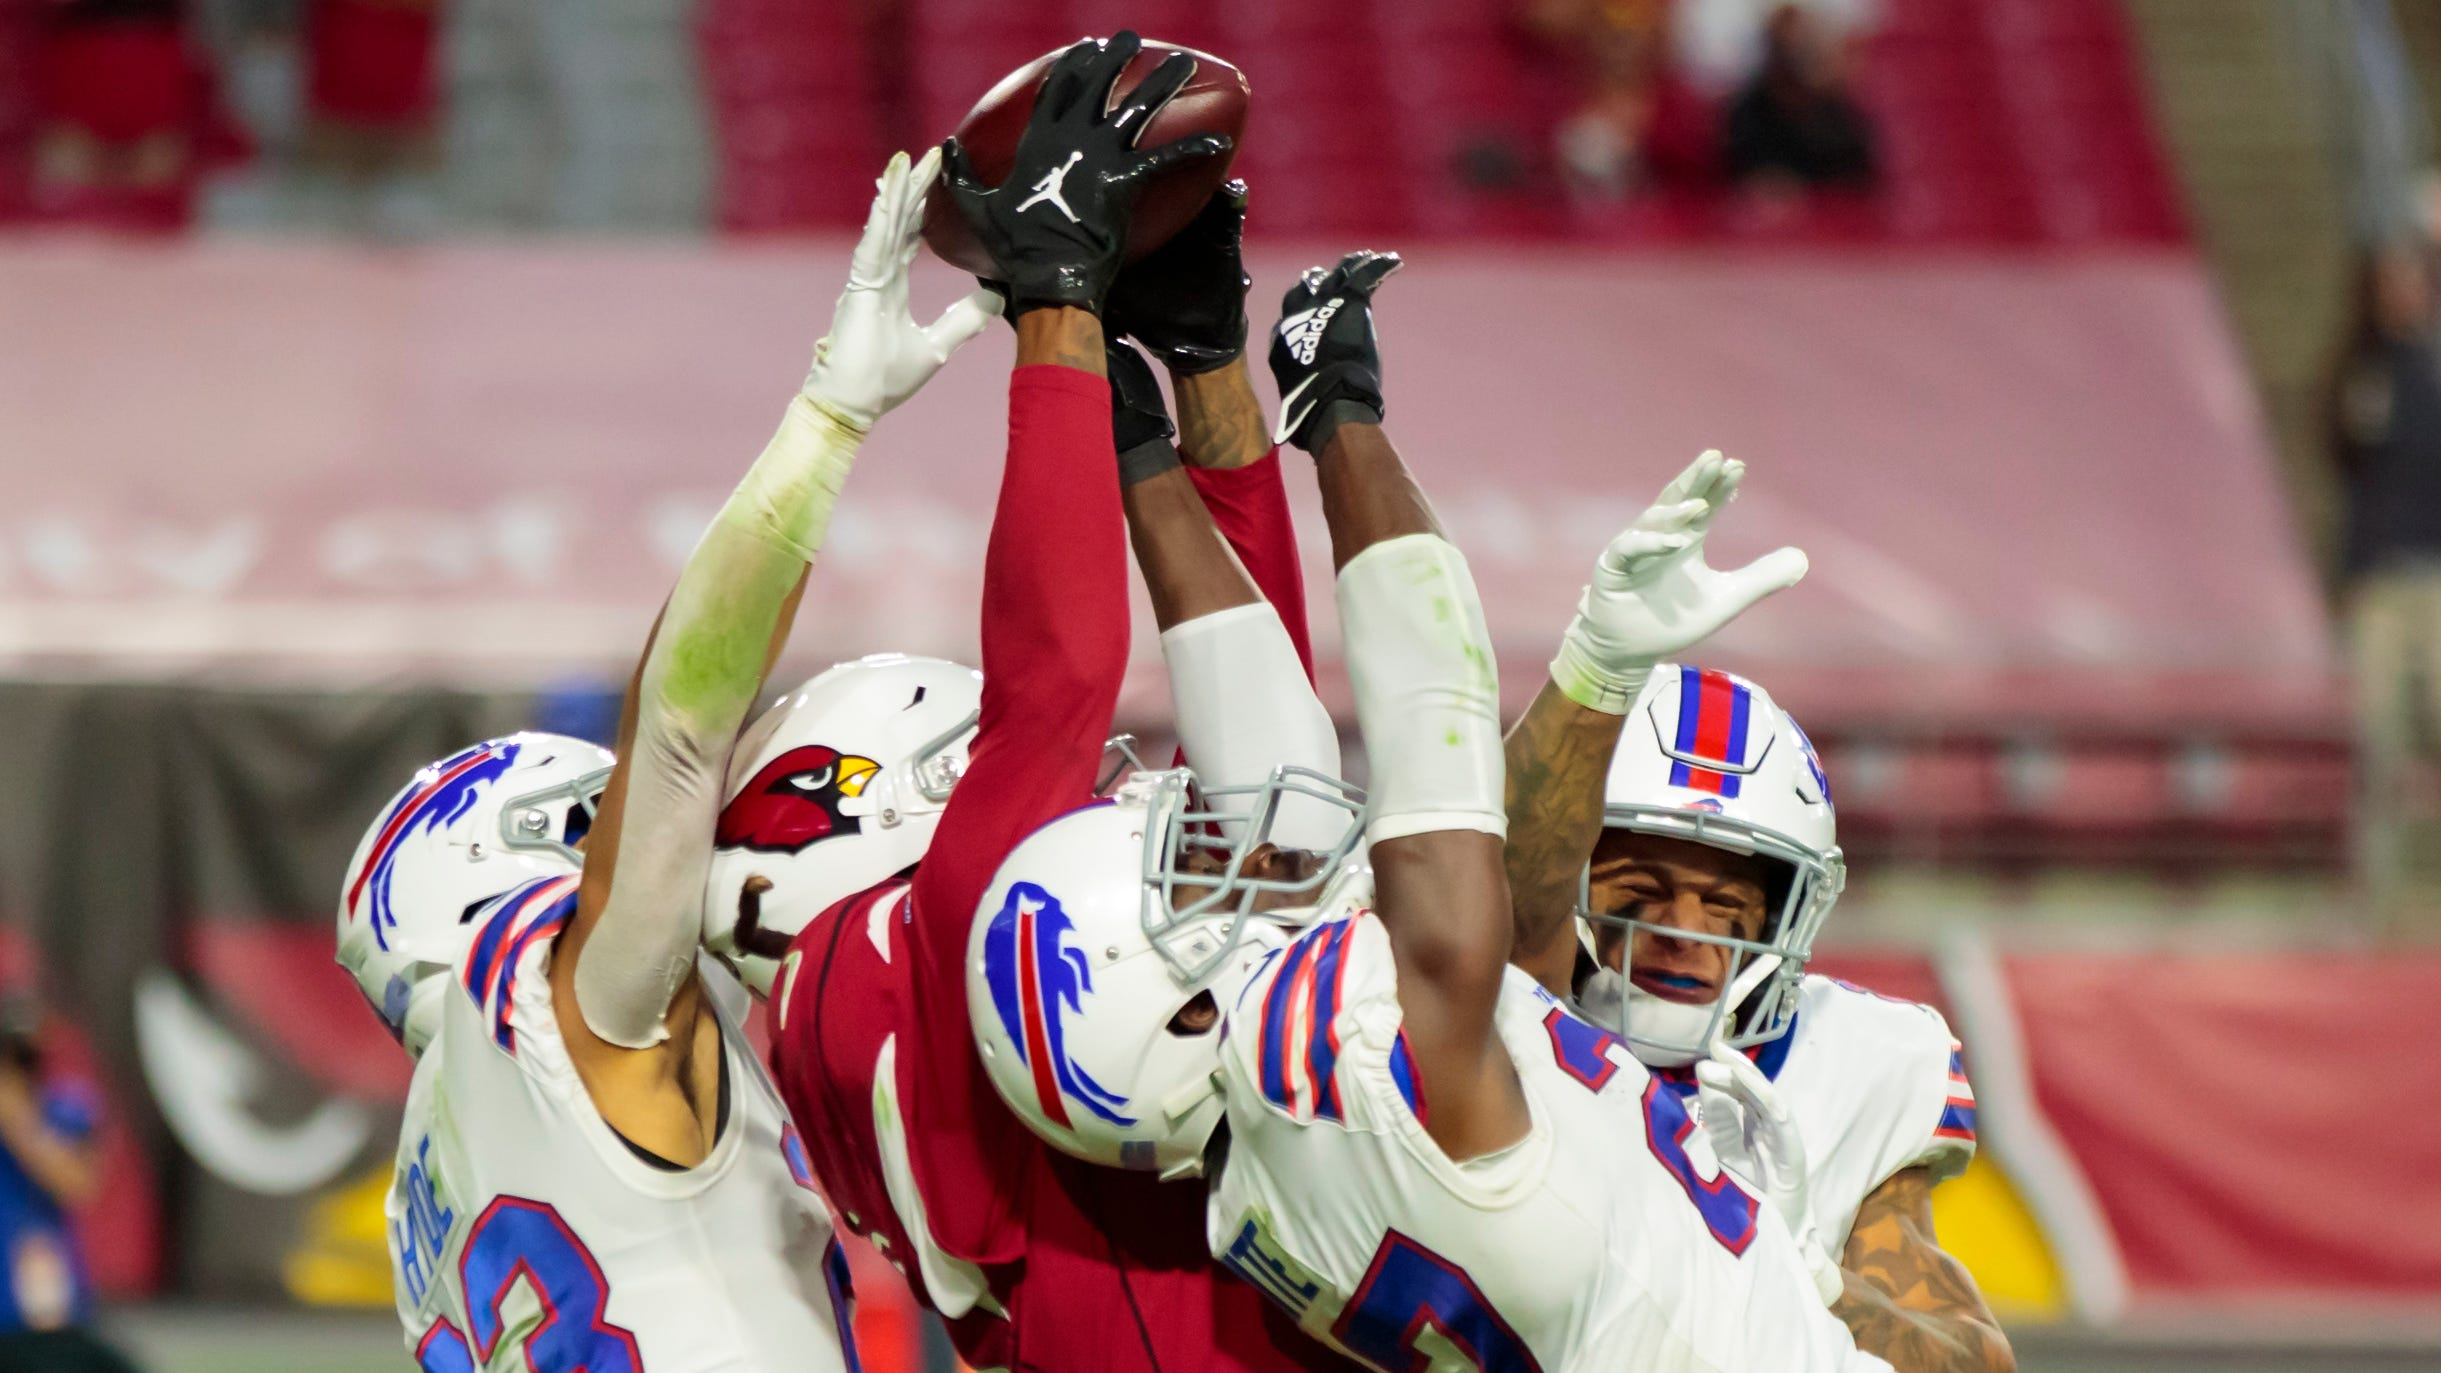 Cardinals Wr Deandre Hopkins Hail Mary Catch Nets Big Gain For Nike